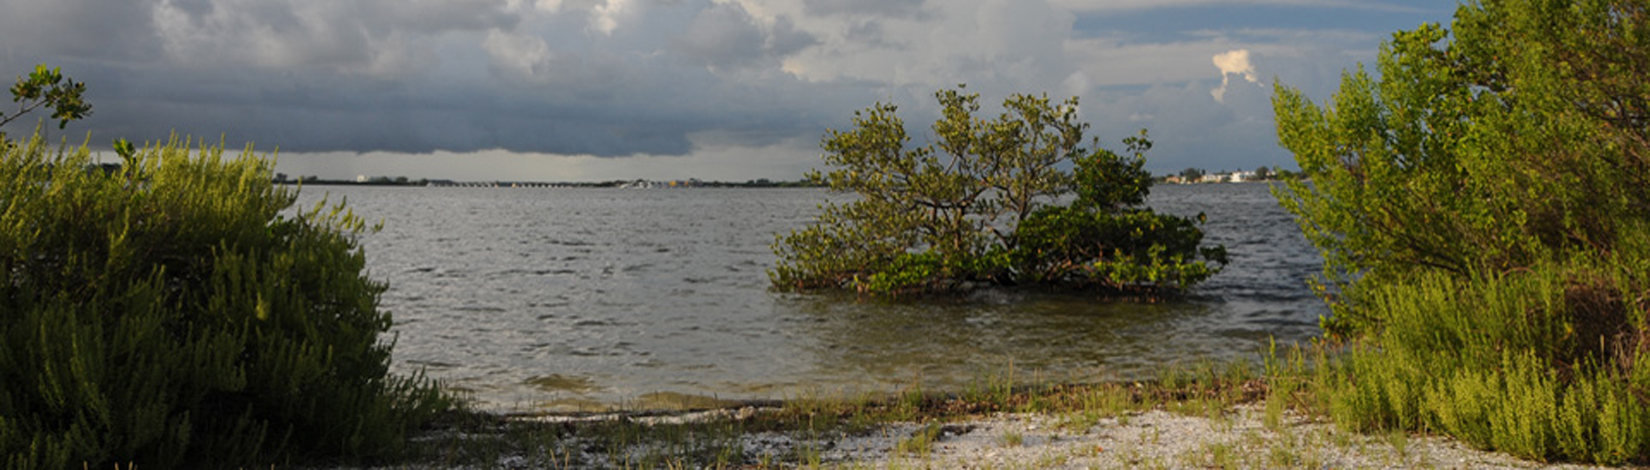 A coastal scene along Lemon Bay in Sarasota County, Florida.